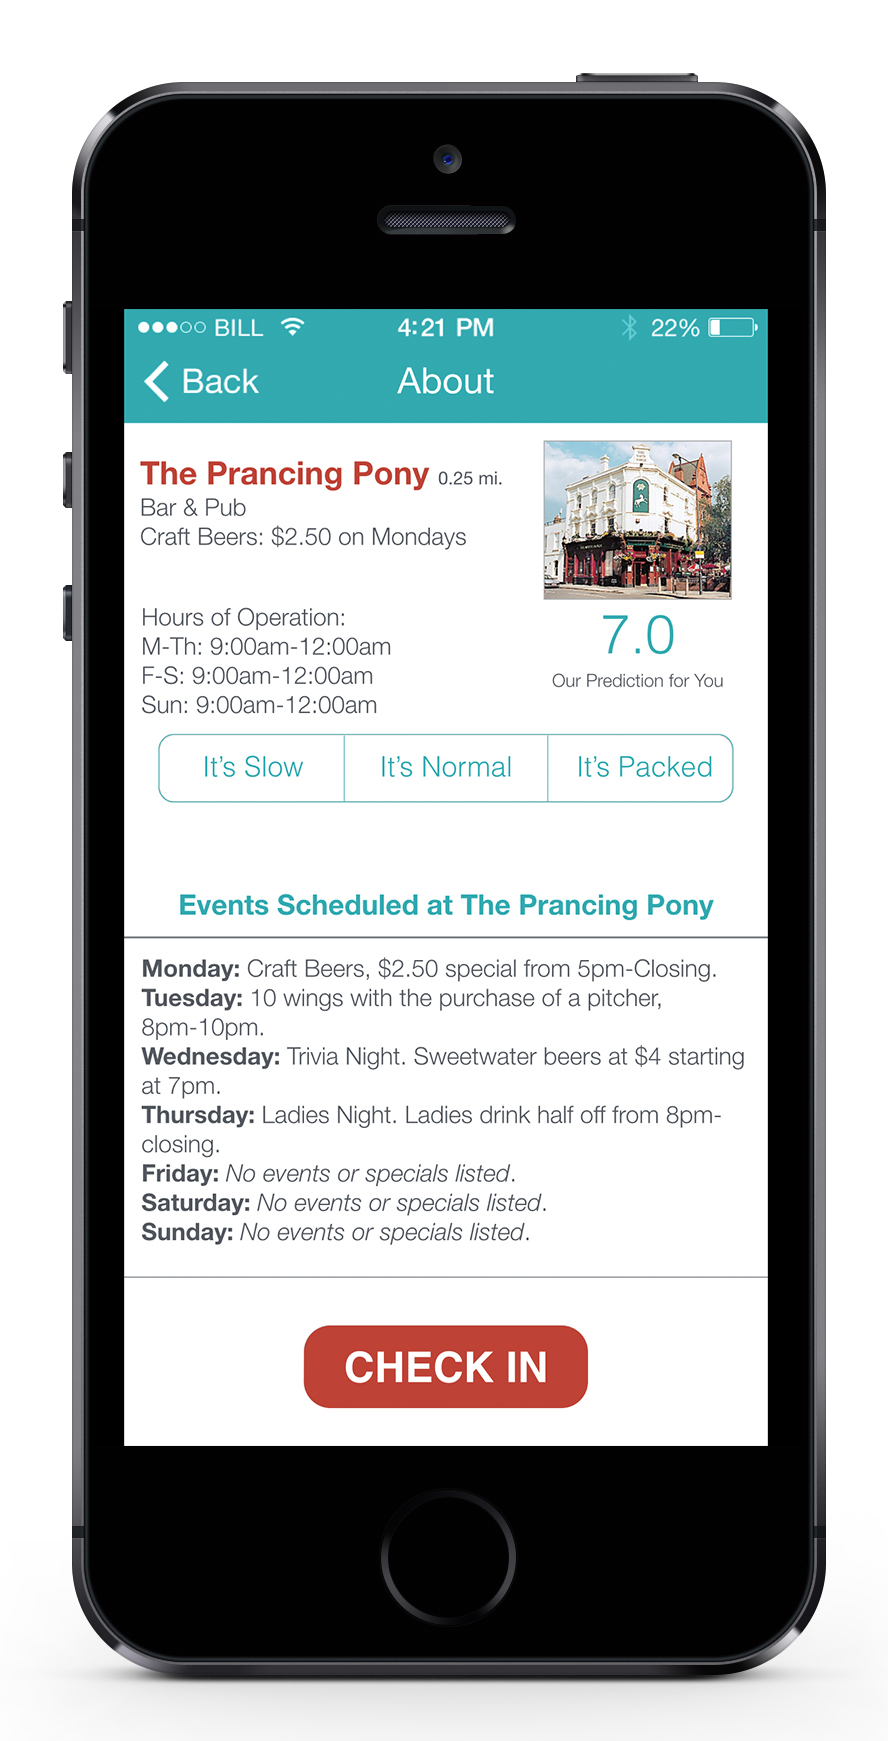 When the user checks into a venue or event, the application begins to measure the time the user spends on his or her phone, while making smart recommendations for interacting with people, such as: friends or mutual friends who are in the vicinity; drinks, meals, or activities to try; or nearby places to explore.